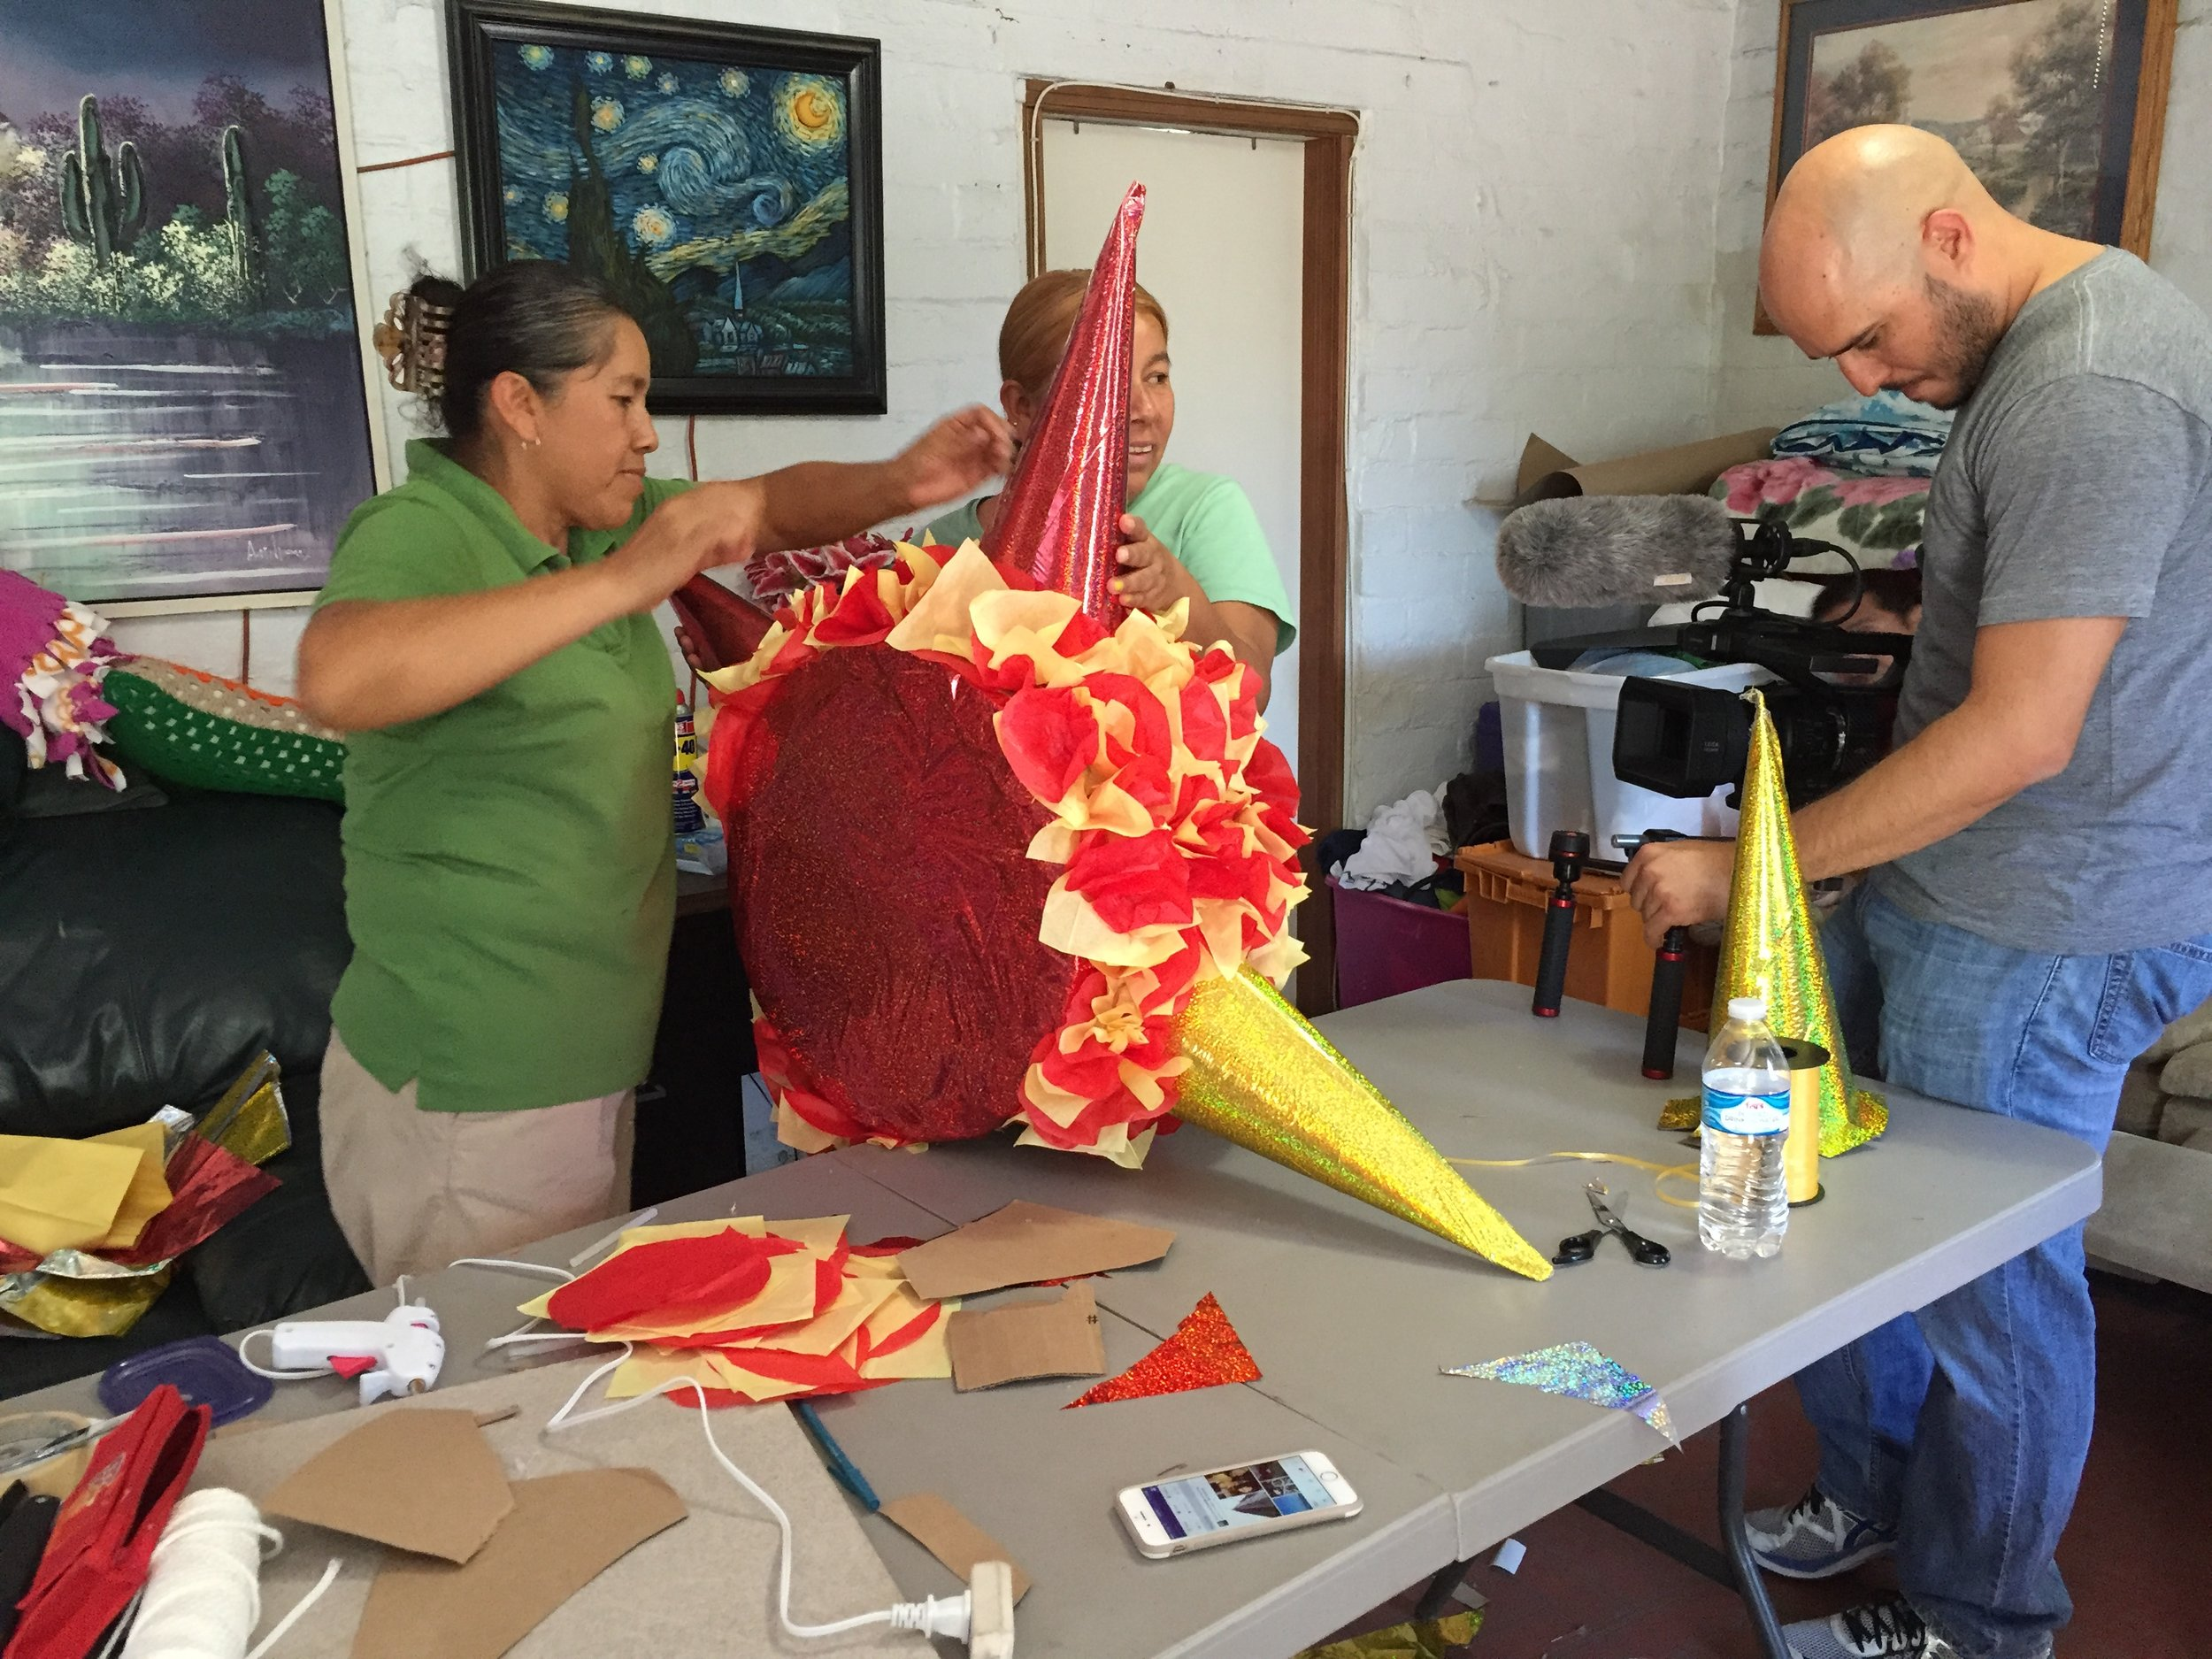 Pera's family welcomed Juan into their home to capture their entrepreneurial spirit, making piñatas to help support the family. After the shoot they shared delicious home-cooked Mexican food, and Juan felt as if he were back in Venezuela with friends.